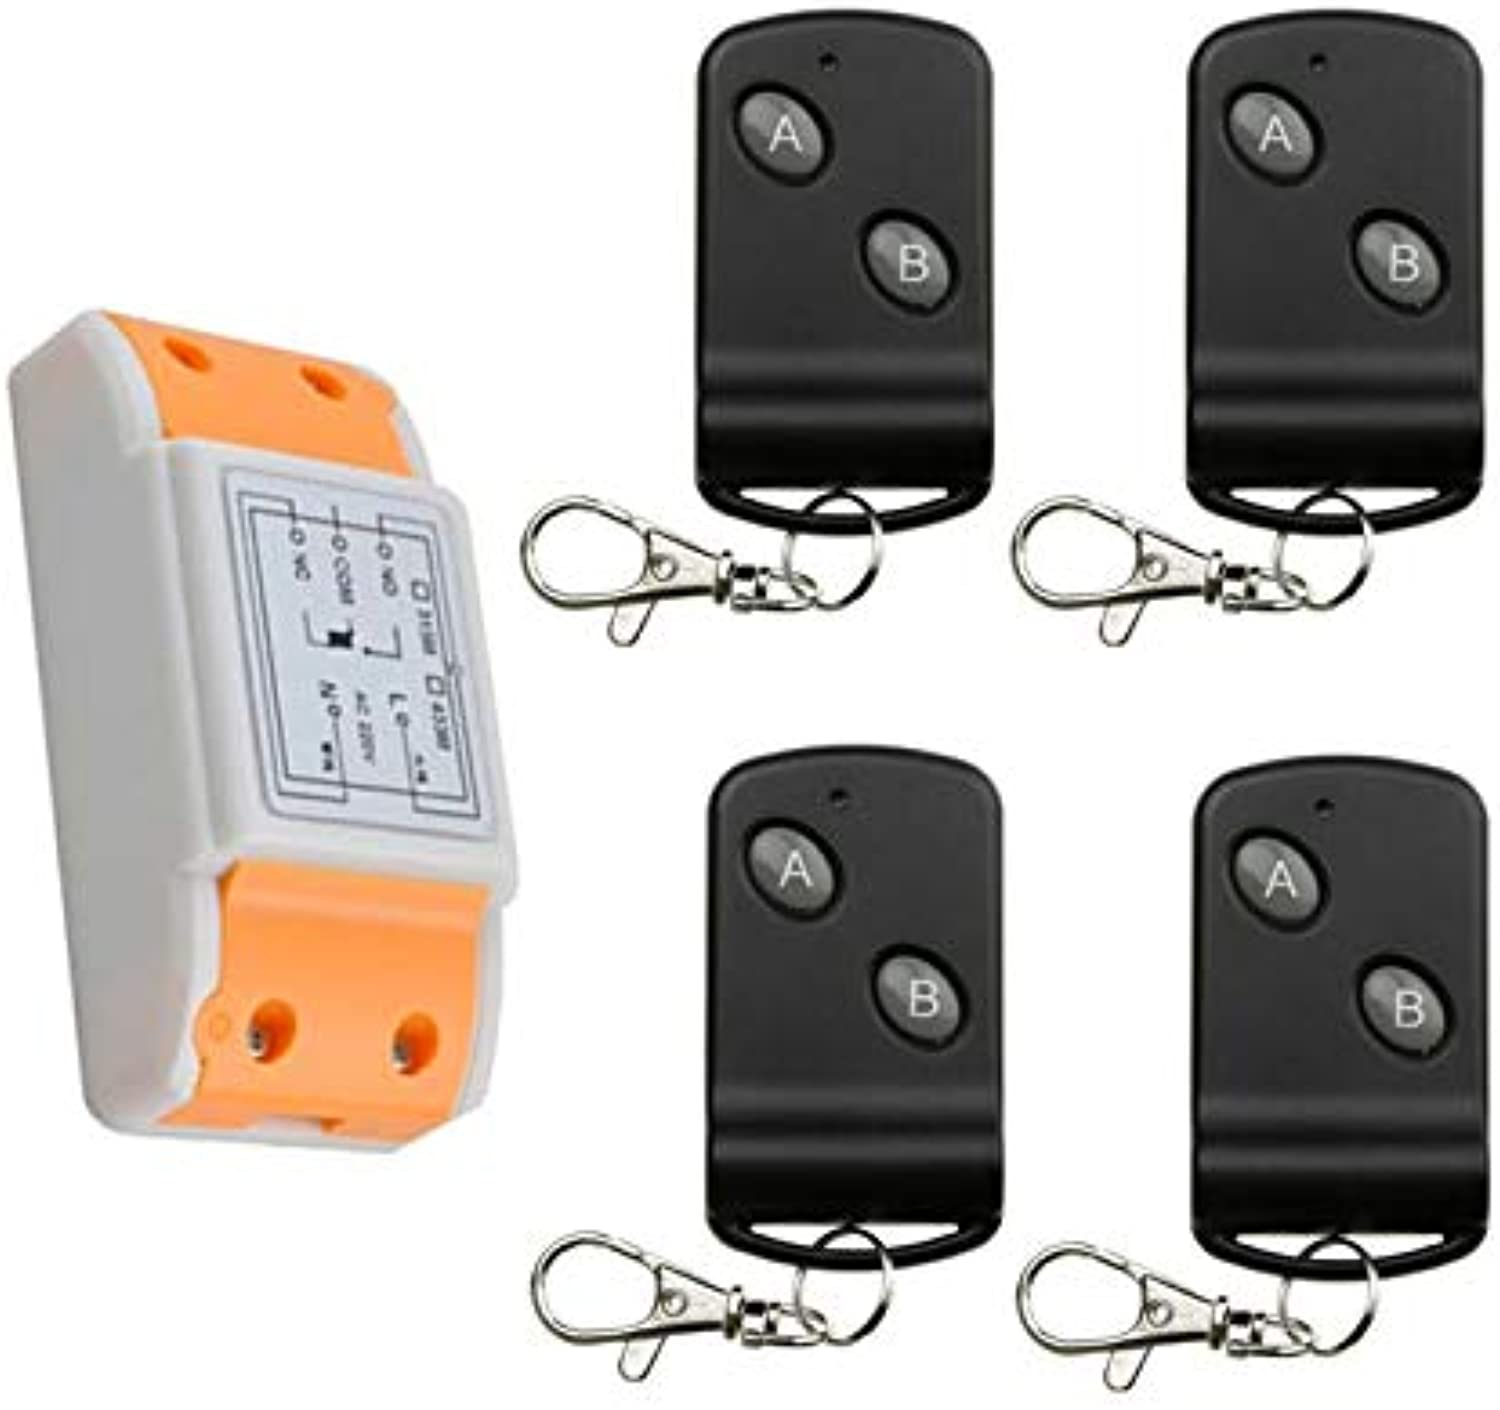 New 220 v 1 ch Cool Remote Control Switch 1 Receiver + 4 Transmitter 2 Key Interself Household